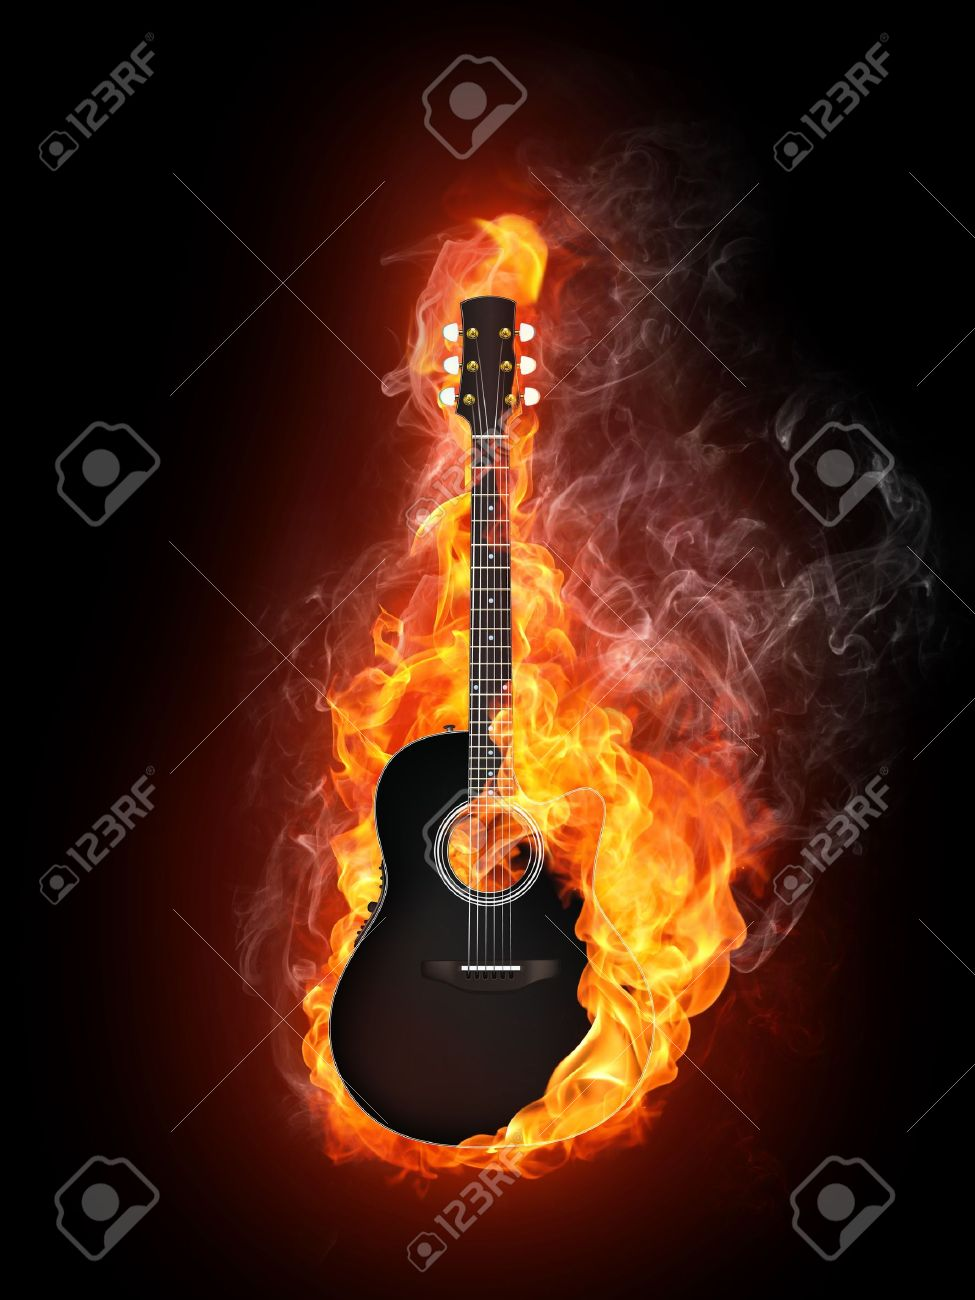 Black Electric Guitar With Flames Acoustic - Electric Guitar in